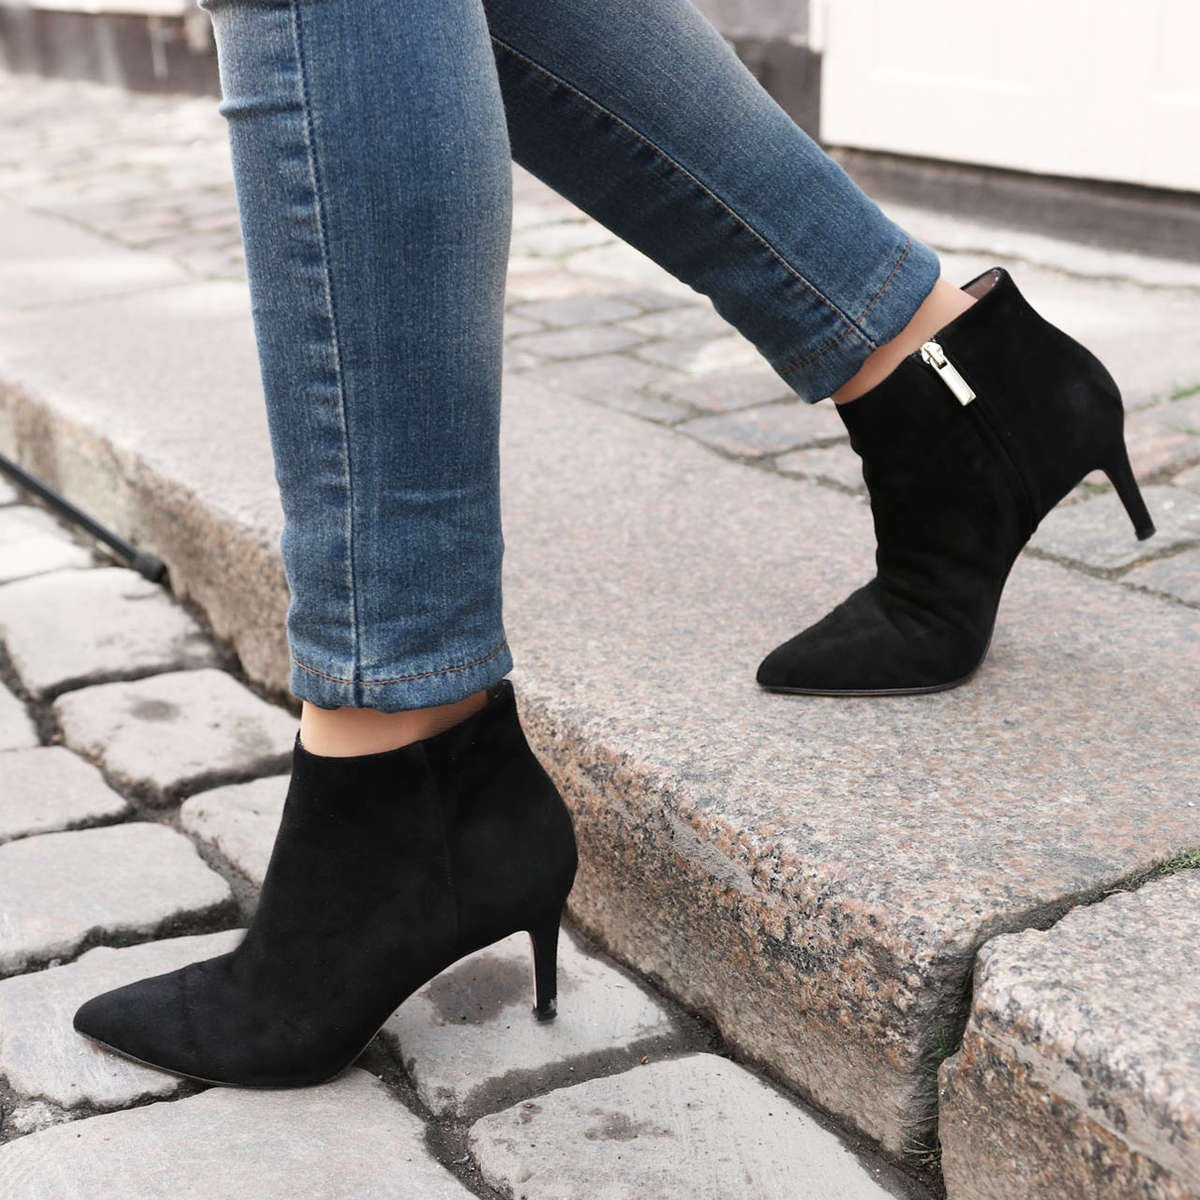 gift-for-high-heel-shoe-lovers-foxy-lady-black-suede-boot-roccamore